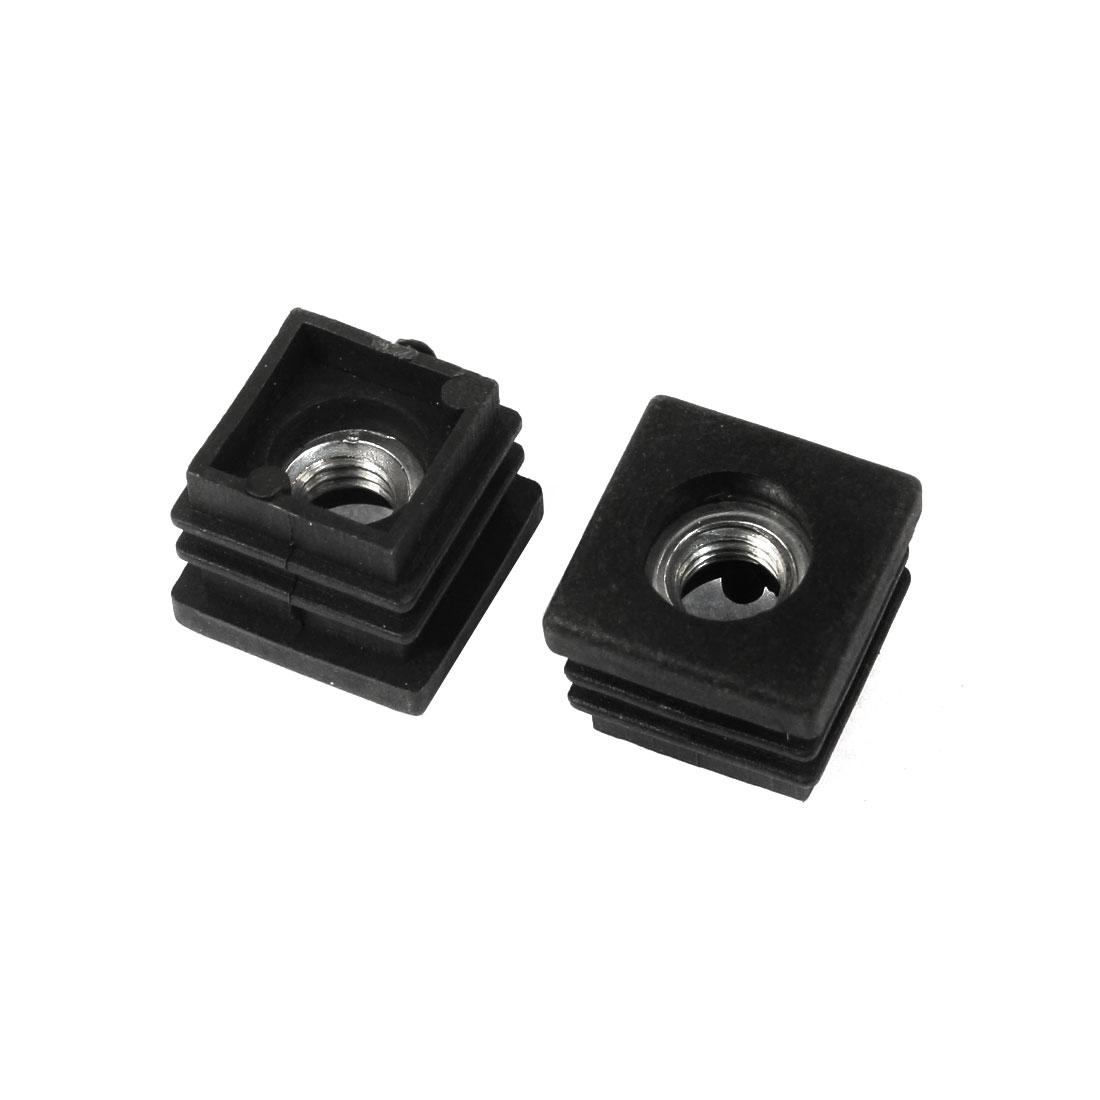 2 Pcs 7mm Female Thread Plastic Blanking End Caps Square Tube Inserts 20mm x 20mm